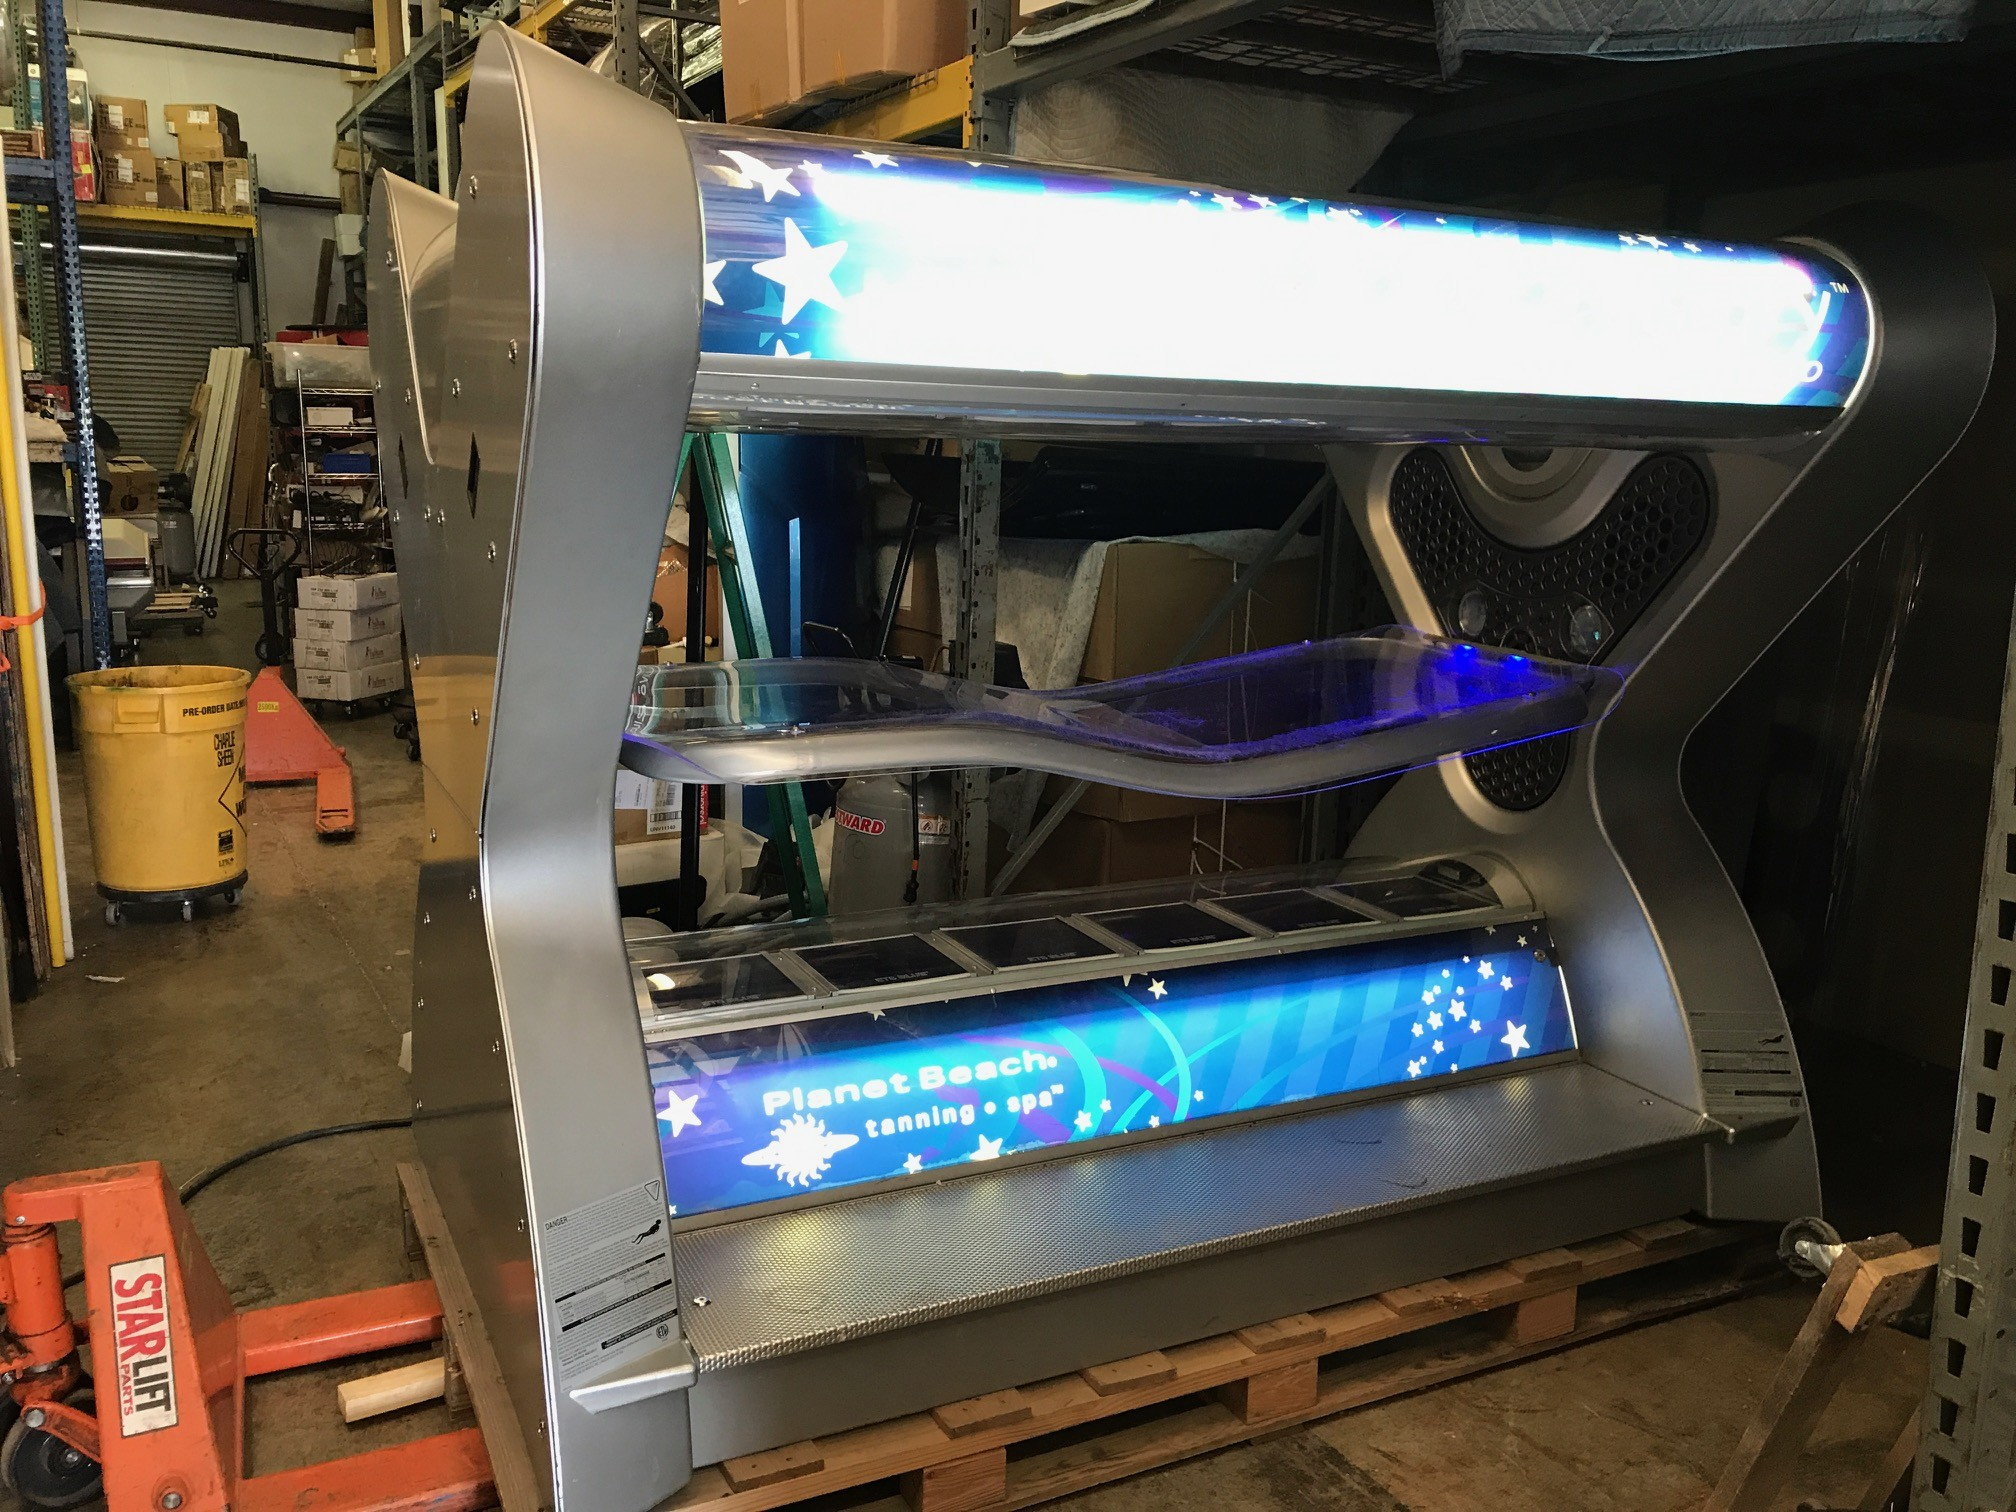 2007 Velocity HP1000 Ultra-Pressure Tanning Bed on